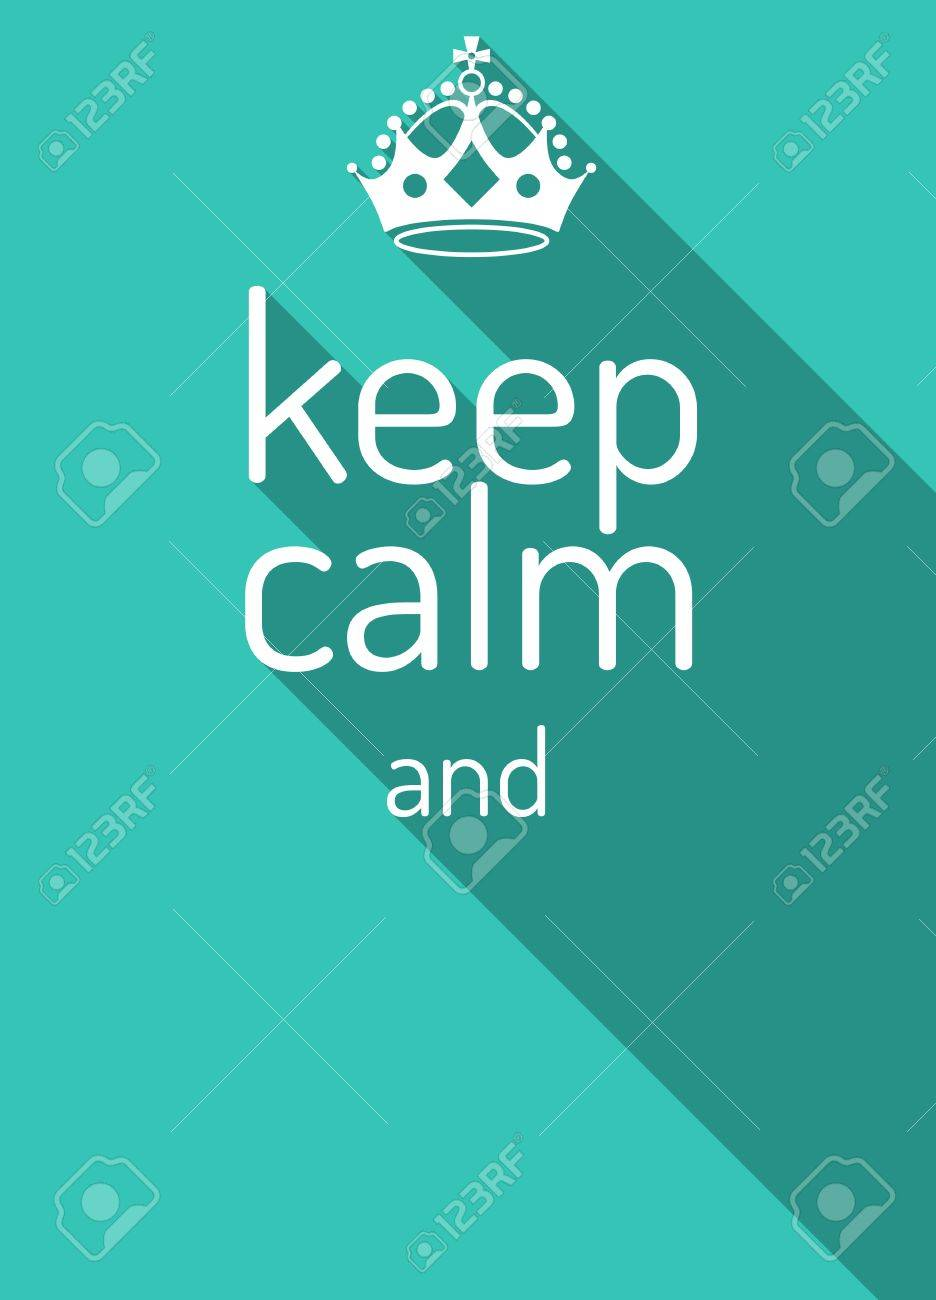 Keep calm retro poster empty template keep calm crown and text keep calm retro poster empty template keep calm crown and text flat style pronofoot35fo Gallery